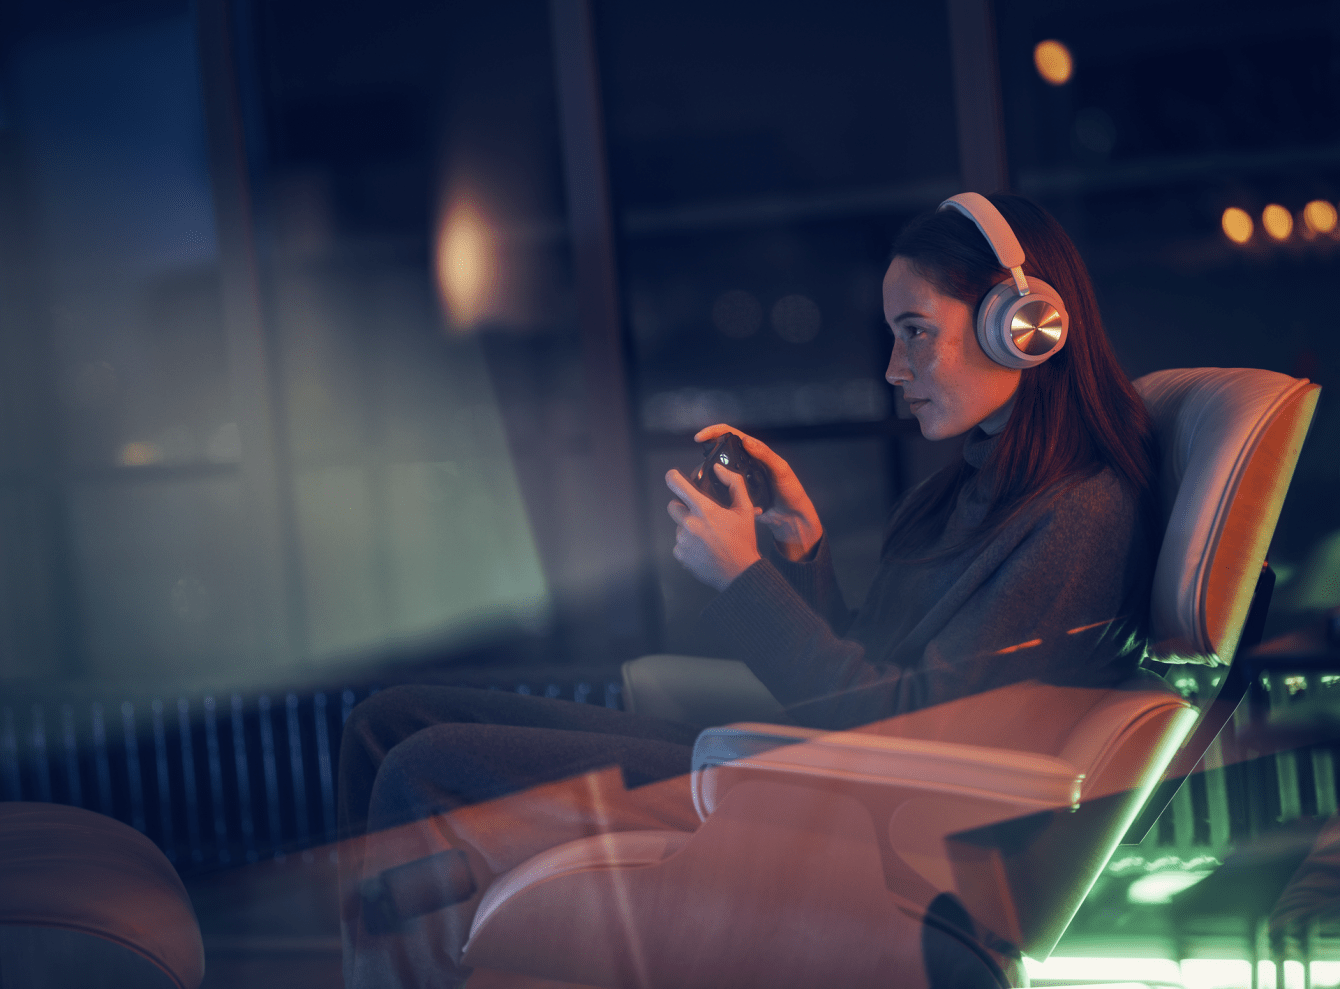 Bang & Olufsen Beoplay Portal: cuffie wireless per gaming e non solo!